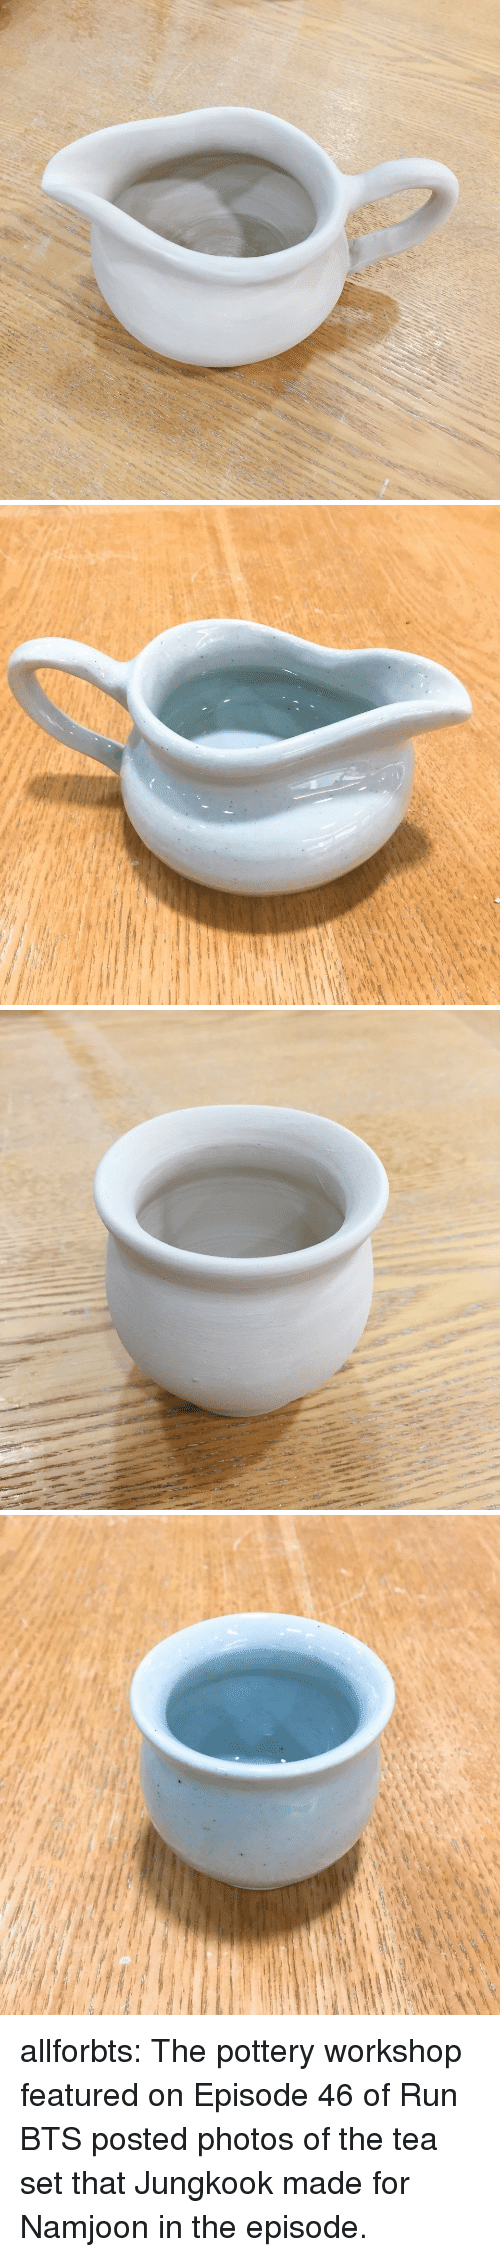 Run, Tumblr, and Blog: allforbts:  The pottery workshop featured on Episode 46 of Run BTS posted photos of the tea set that Jungkook made for Namjoon in the episode.